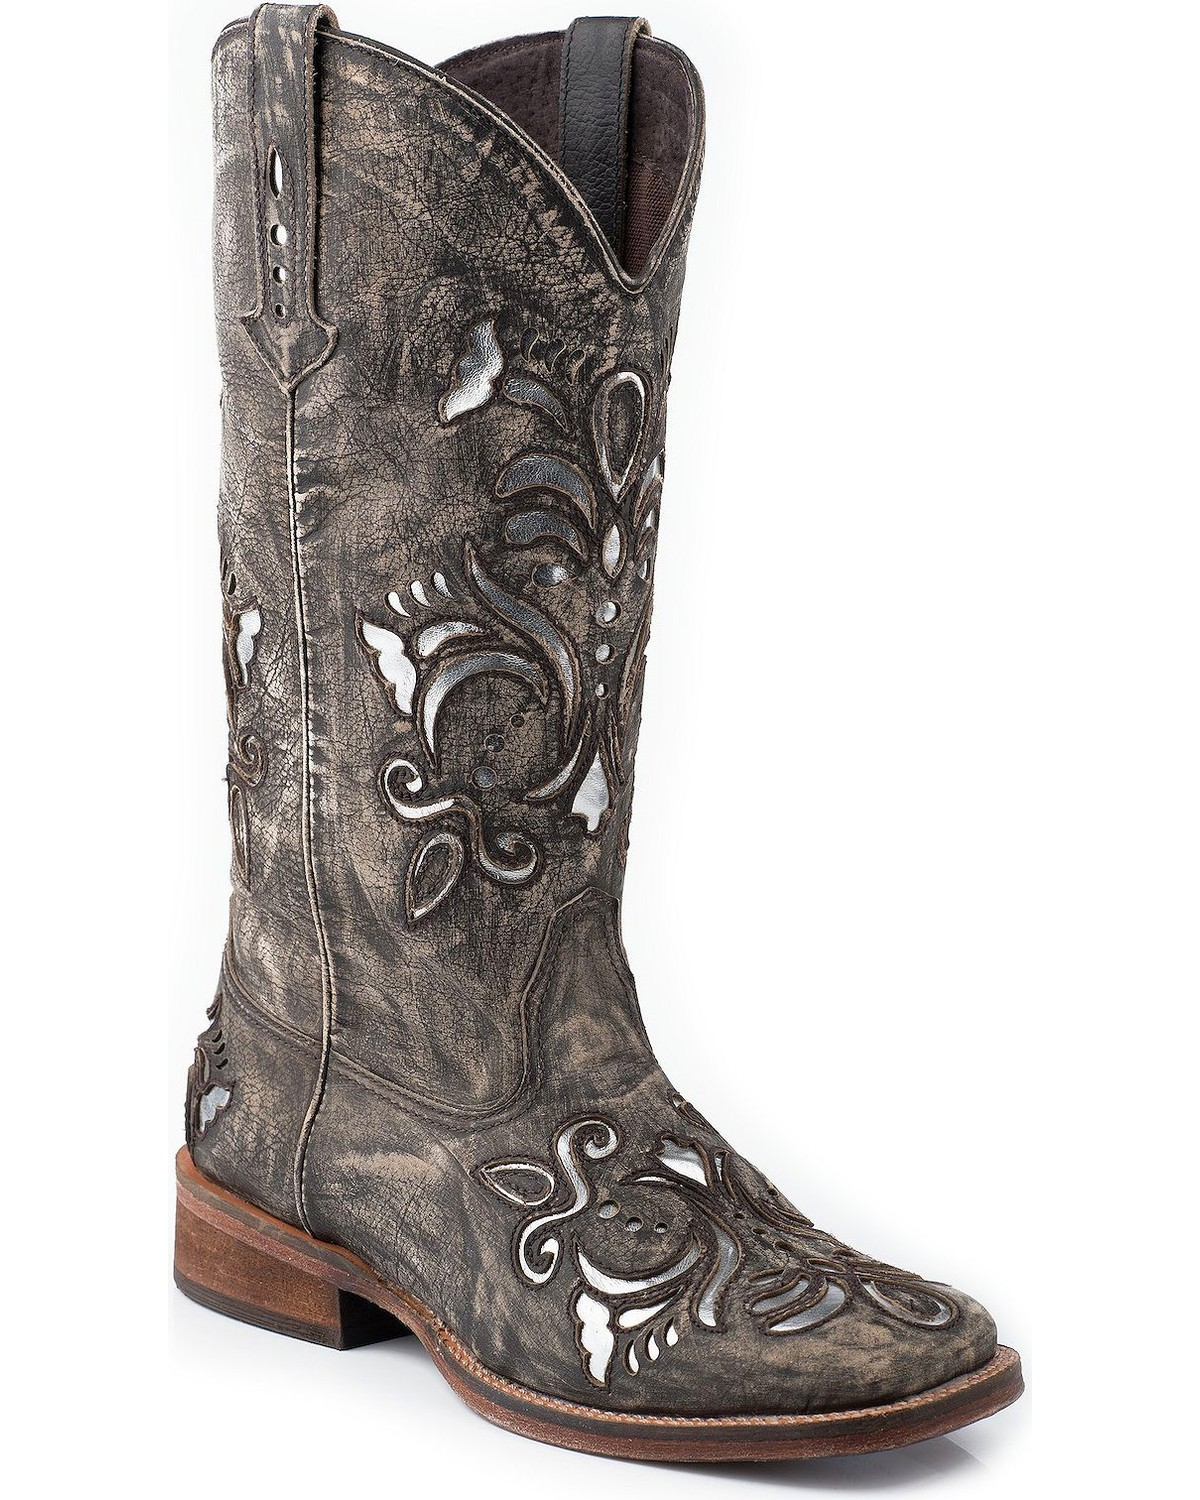 Roper Fancy Silver Inlay Cowgirl Boots